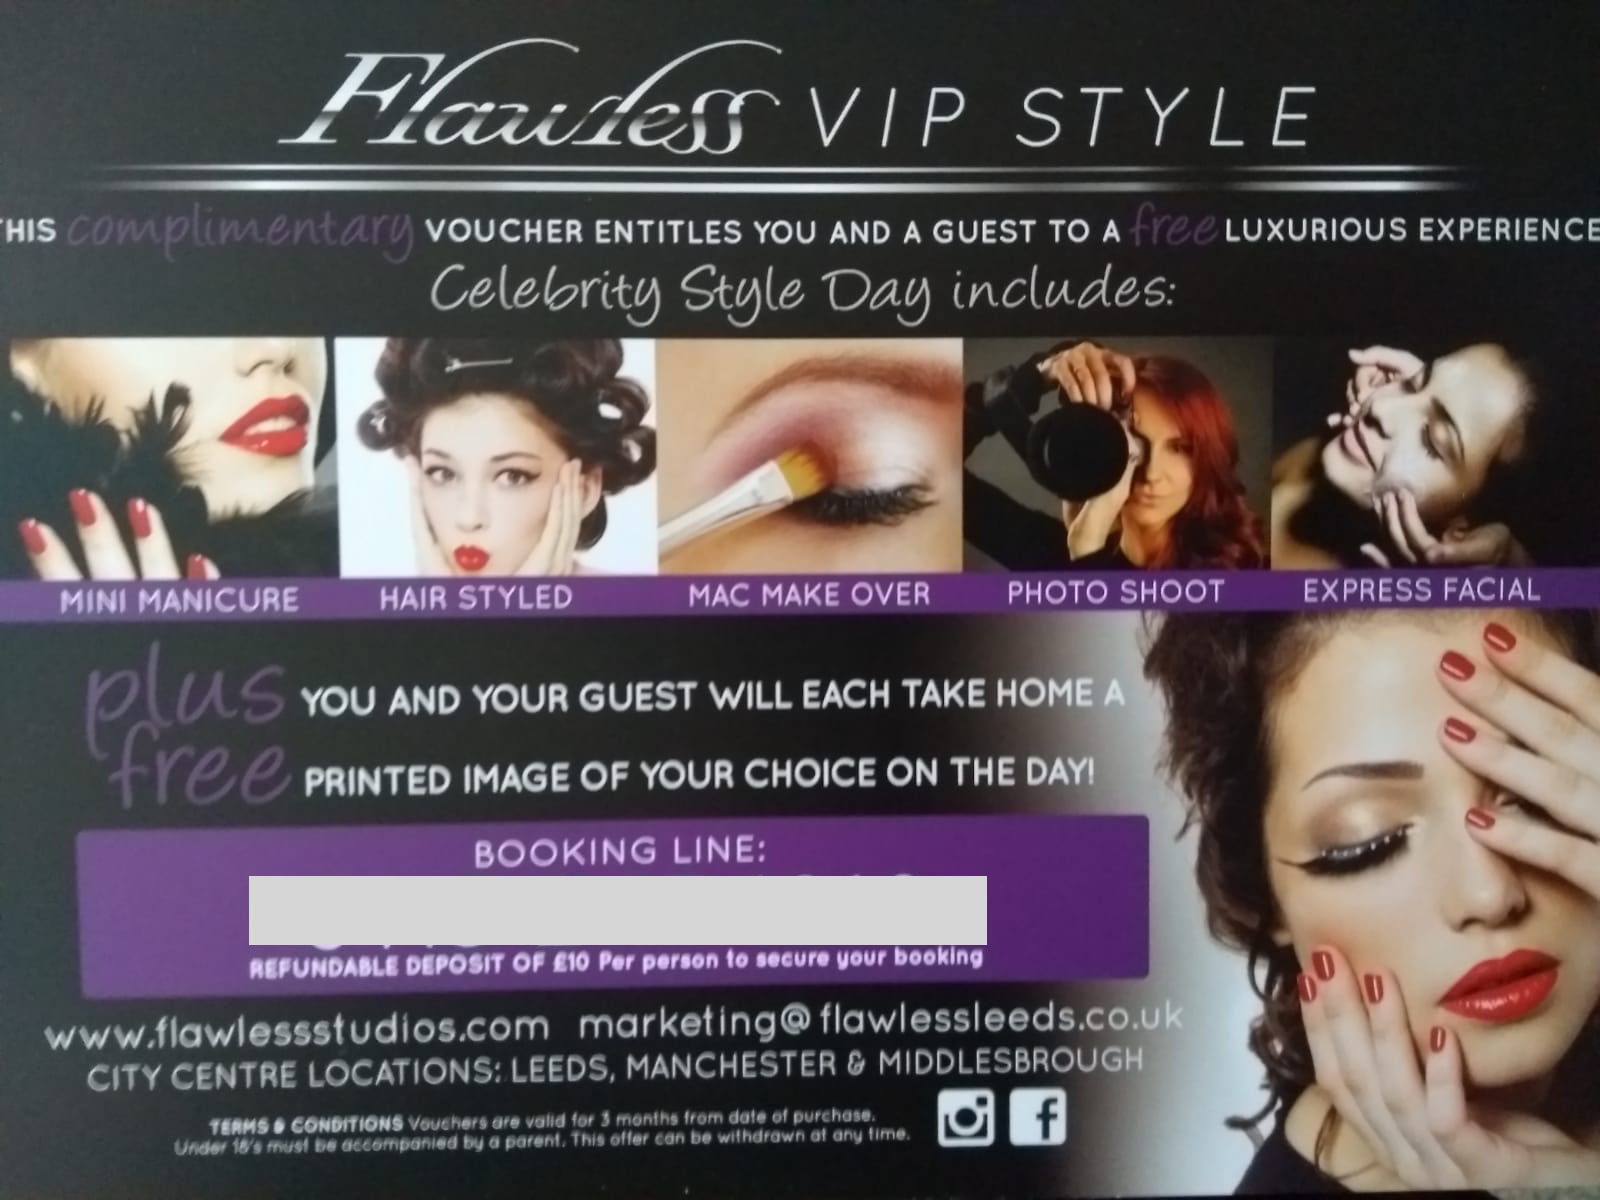 Flawless Photography Studio's complimentary voucher for a free VIP experience at their studio